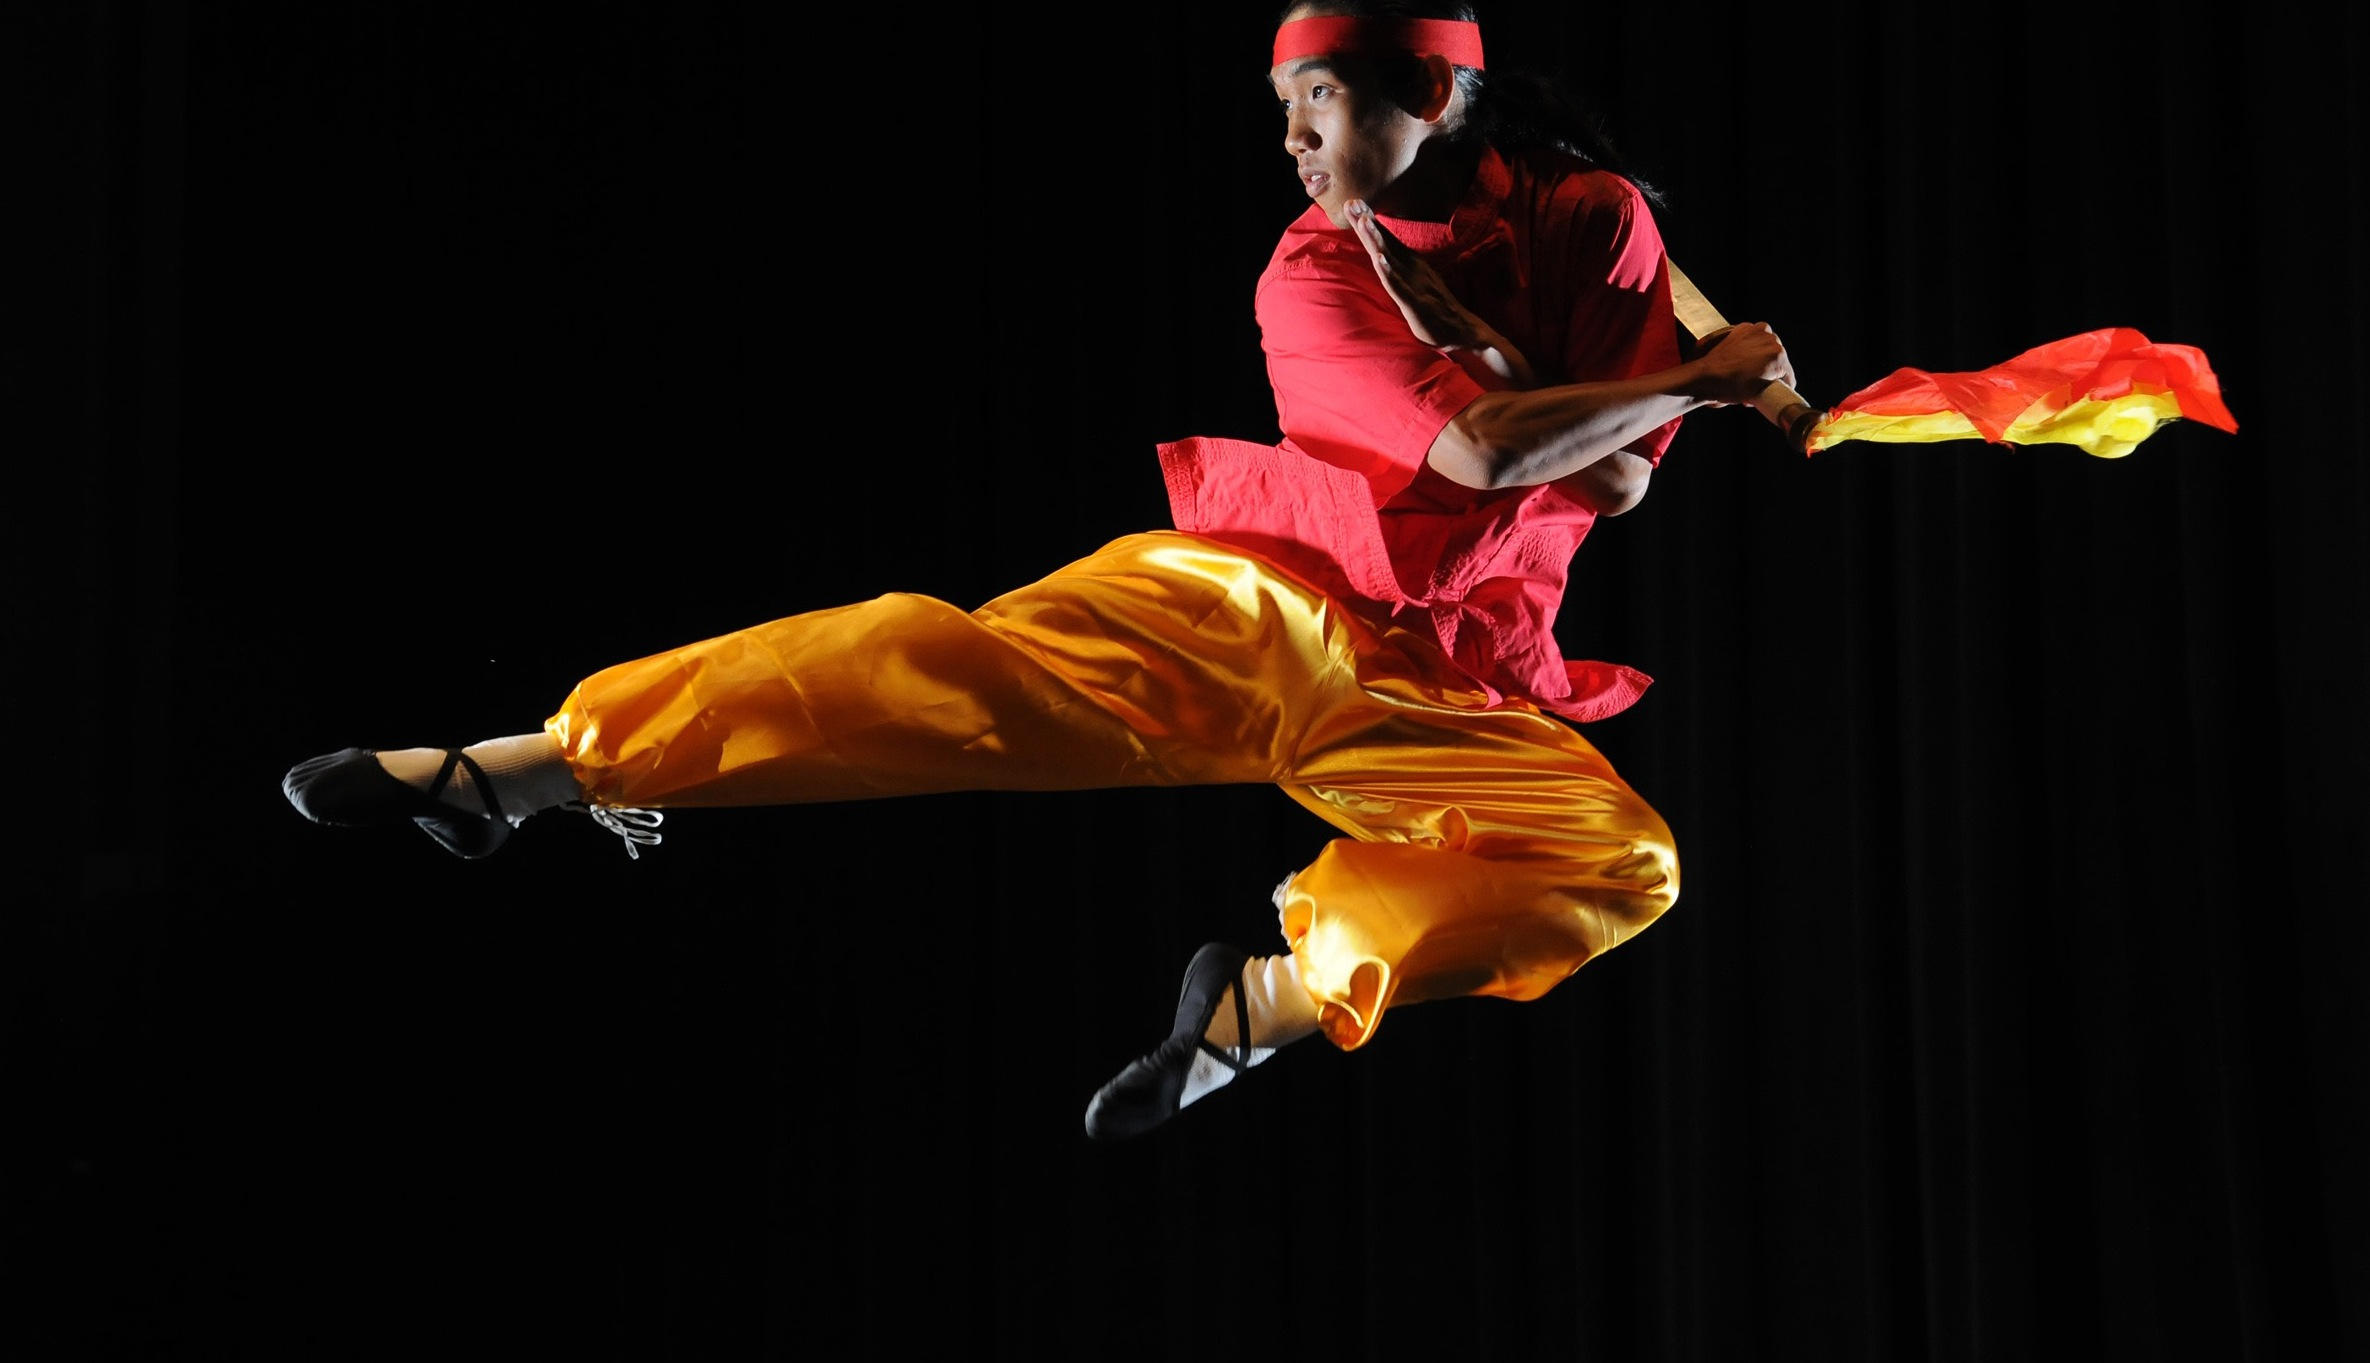 Photo of performer jumping in air with one leg outstretched, the other bent